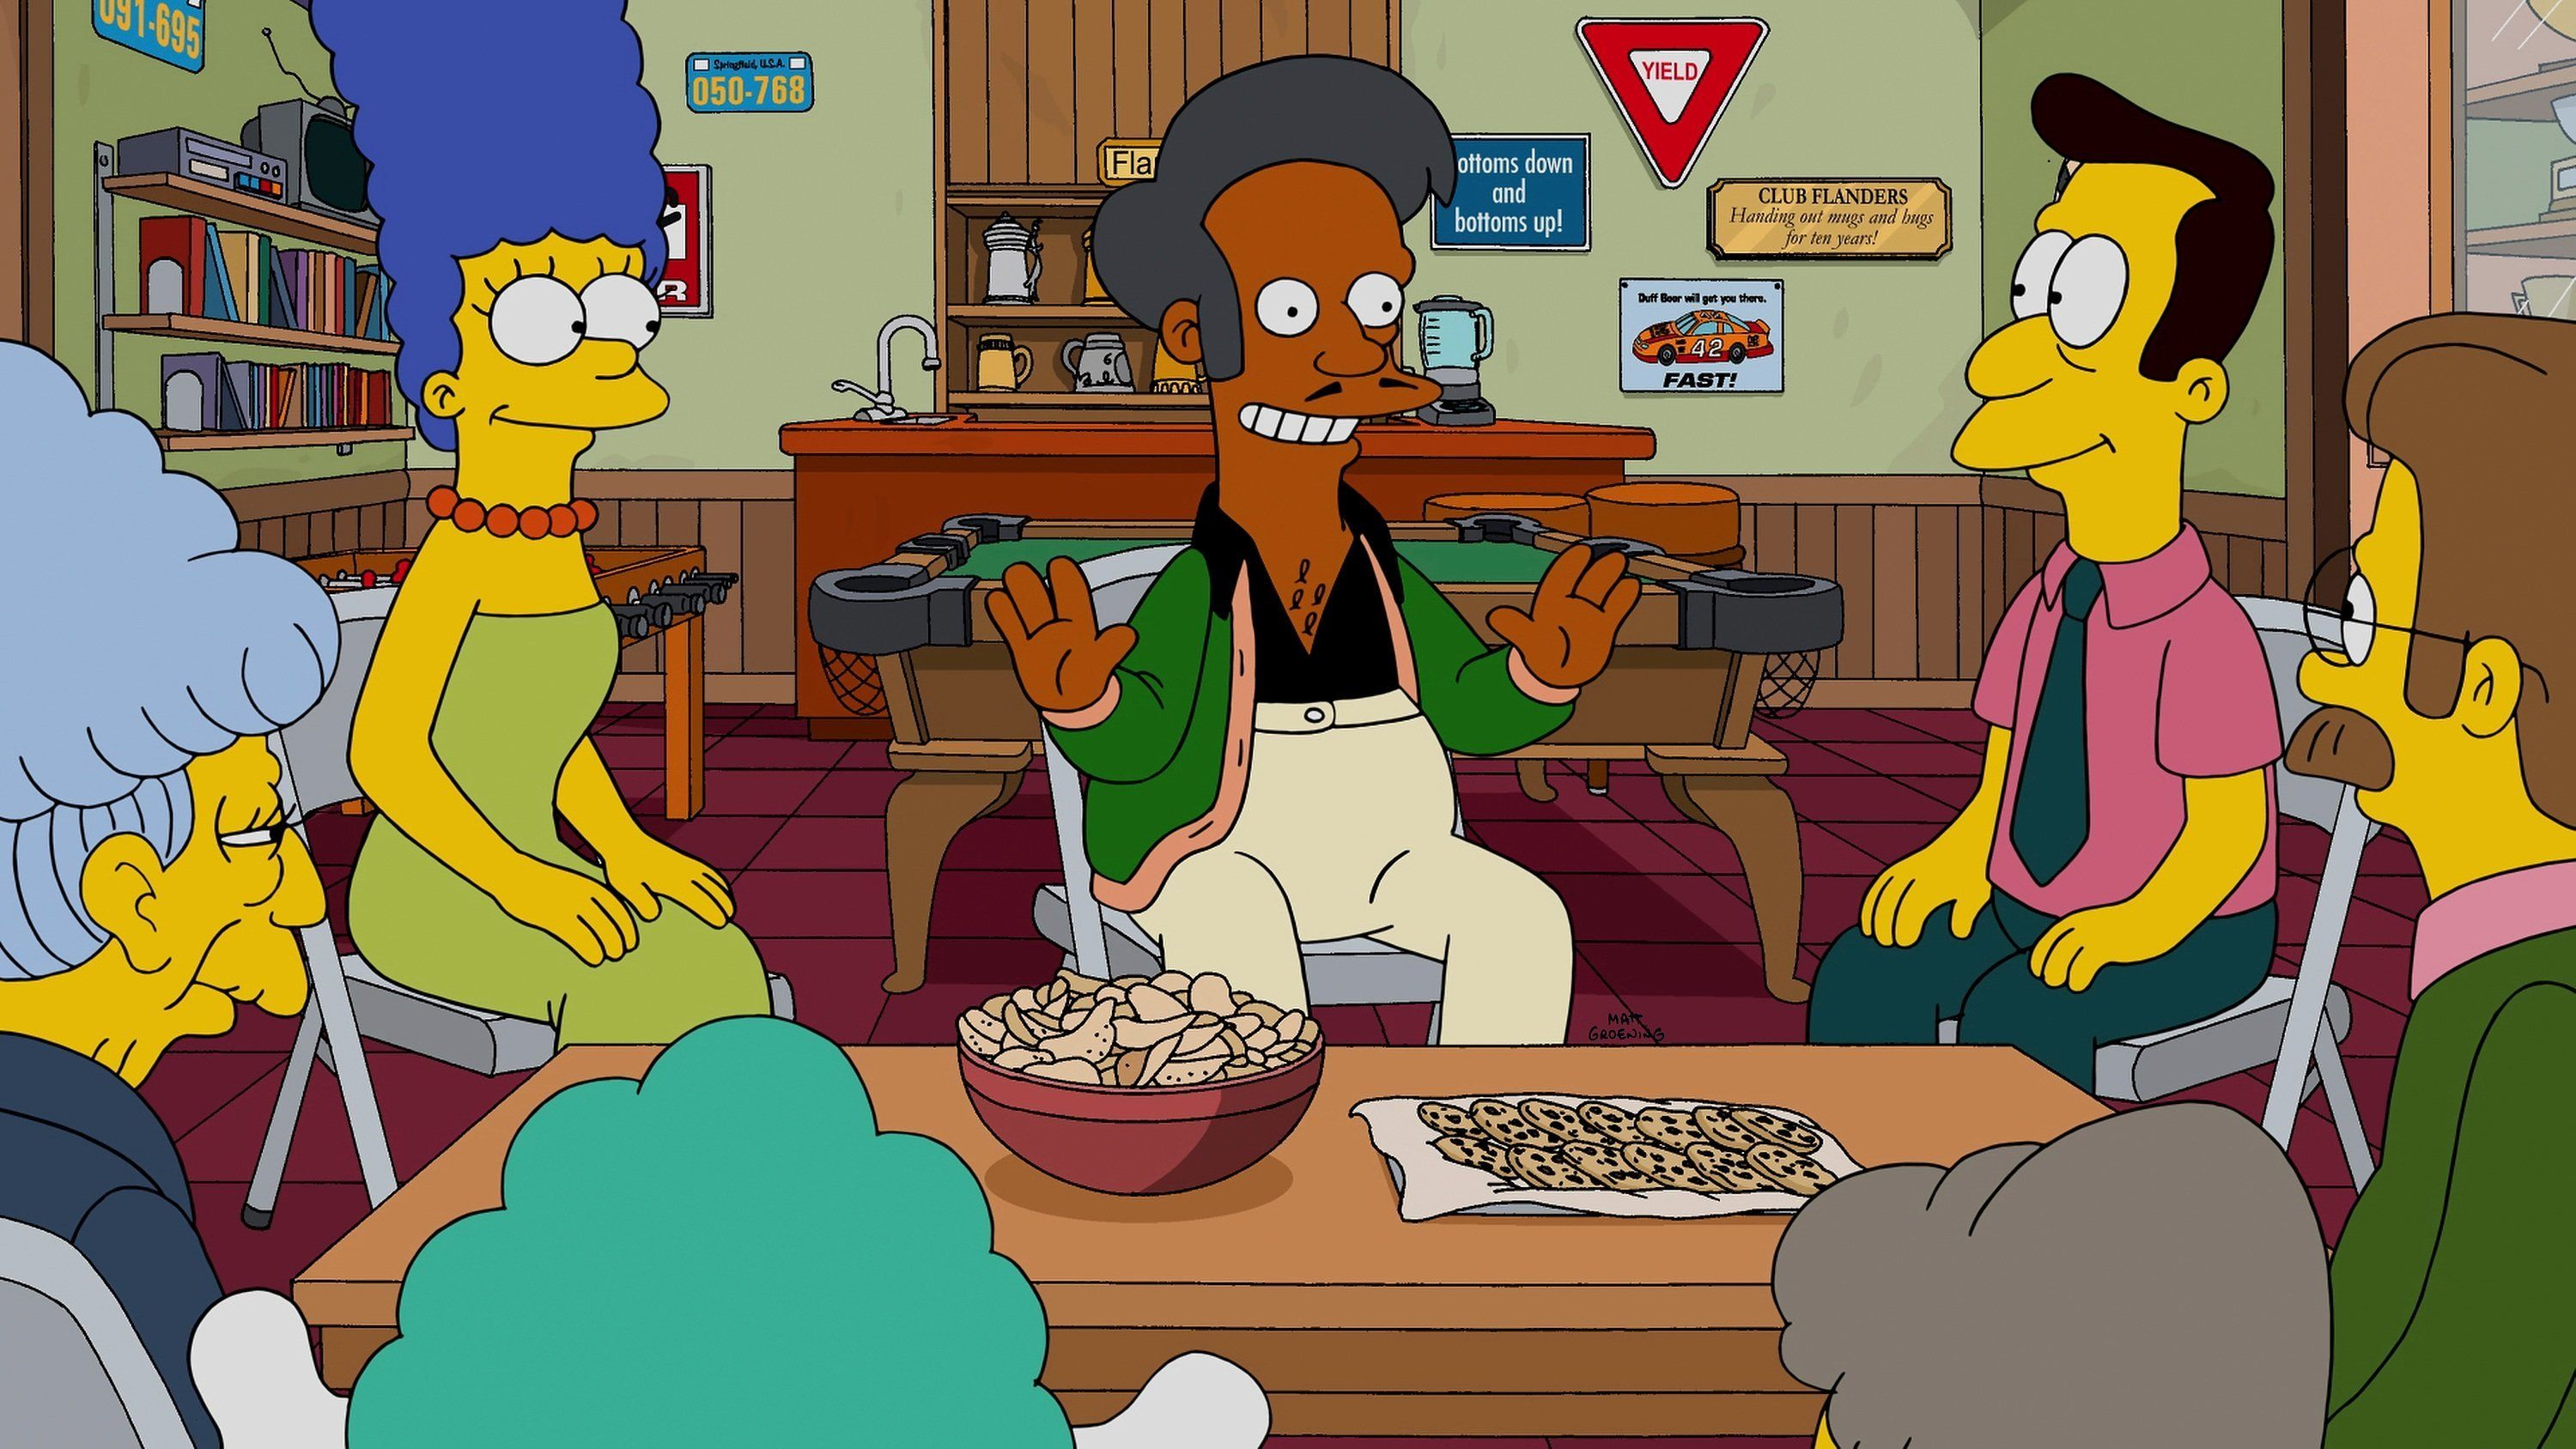 THE SIMPSONS: Apu tells Marges congregation how they can collect enough money to repair their church in the all-new Sky Police episode of THE SIMPSONS airing Sunday, March 8 (8:00-8:30 PM ET/PT) on FOX. (Photo by FOX via Getty Images)